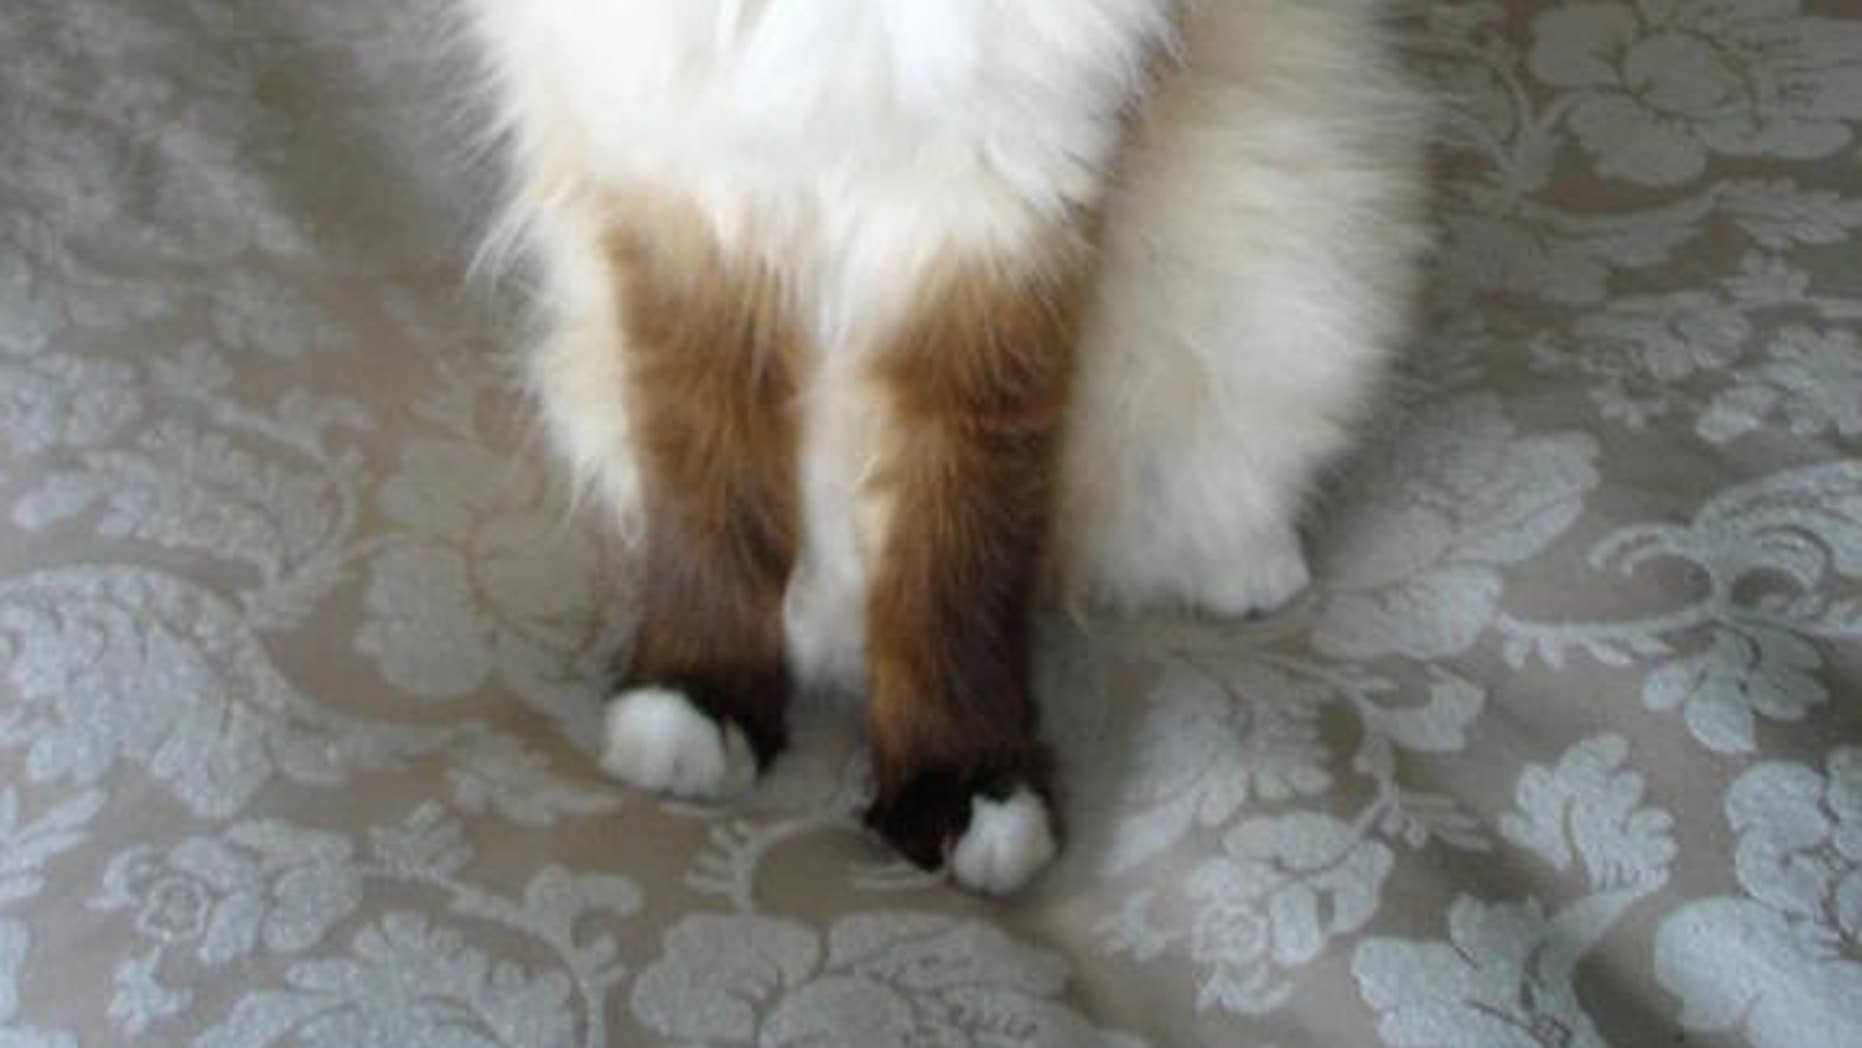 Kuching Mahal (which means 'cat expensive' in Indonesian), a 16-year-old Birman that experiences feline audiogenic reflex seizures.